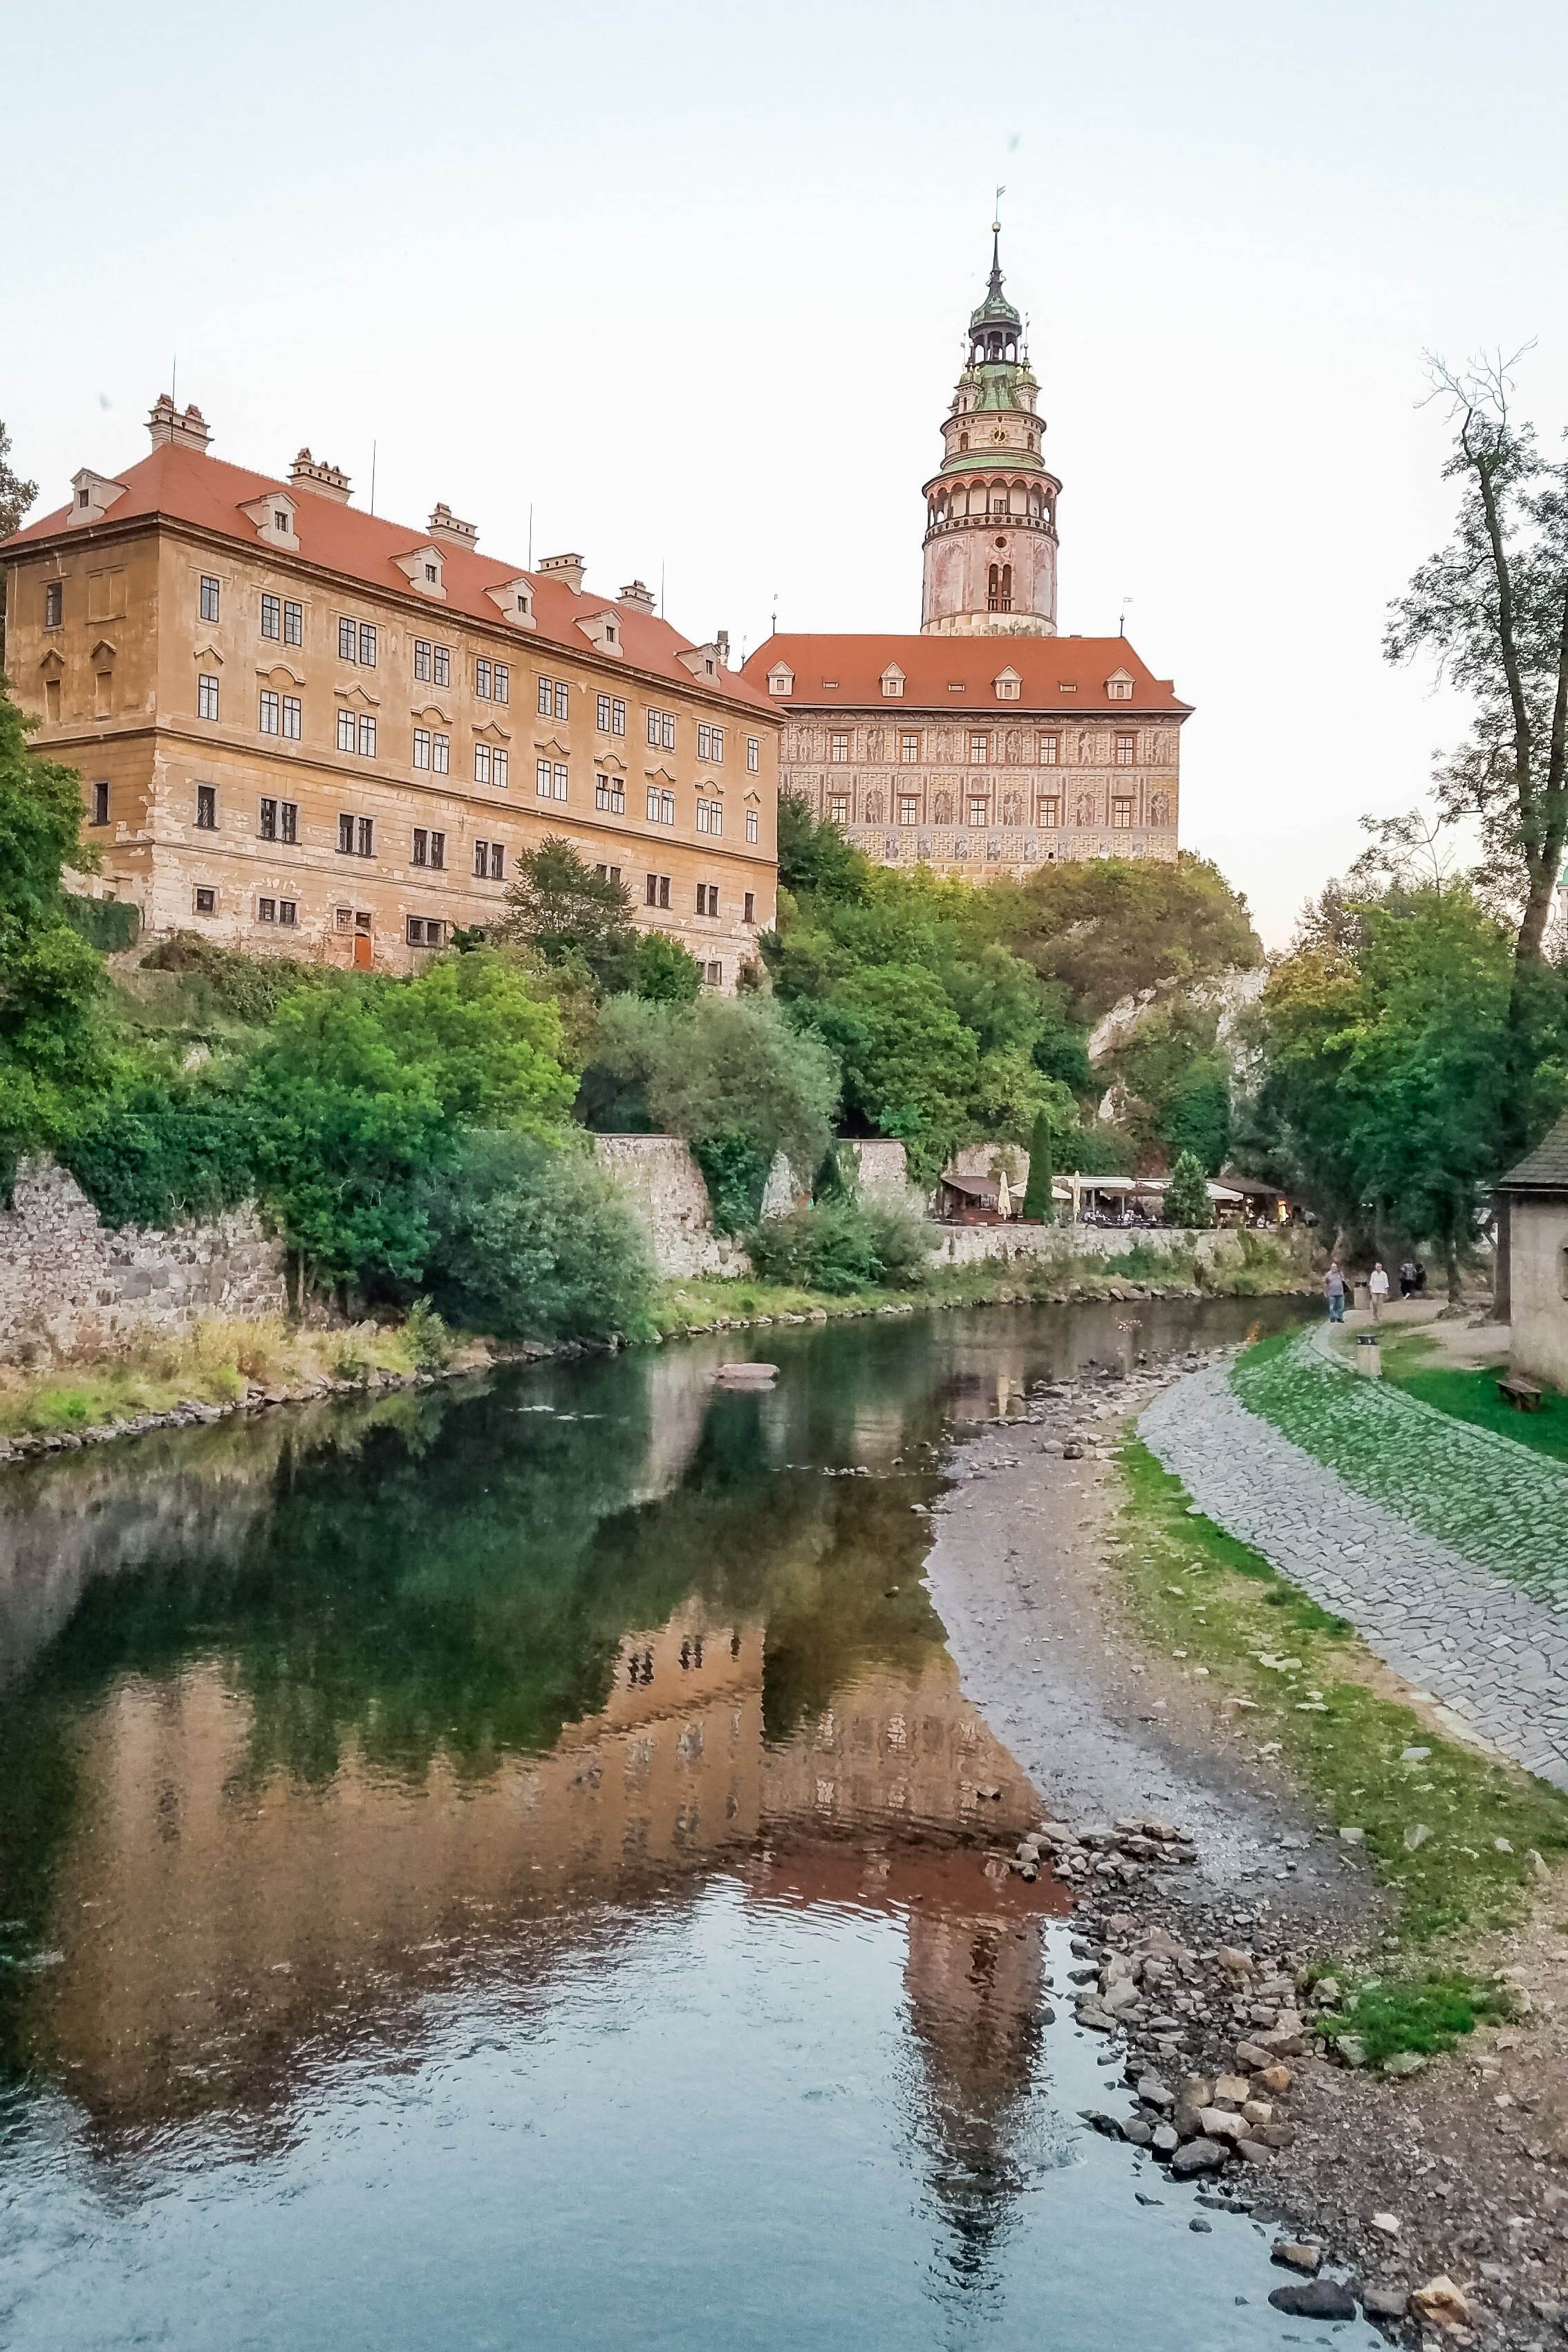 The Cesky Krumlov Castle and tower reflects on the surface of the Vltava River near downtown Cesky Krumlov. You can stroll and dine along the riverbank or rent rafts for a thrilling excursion on the water.